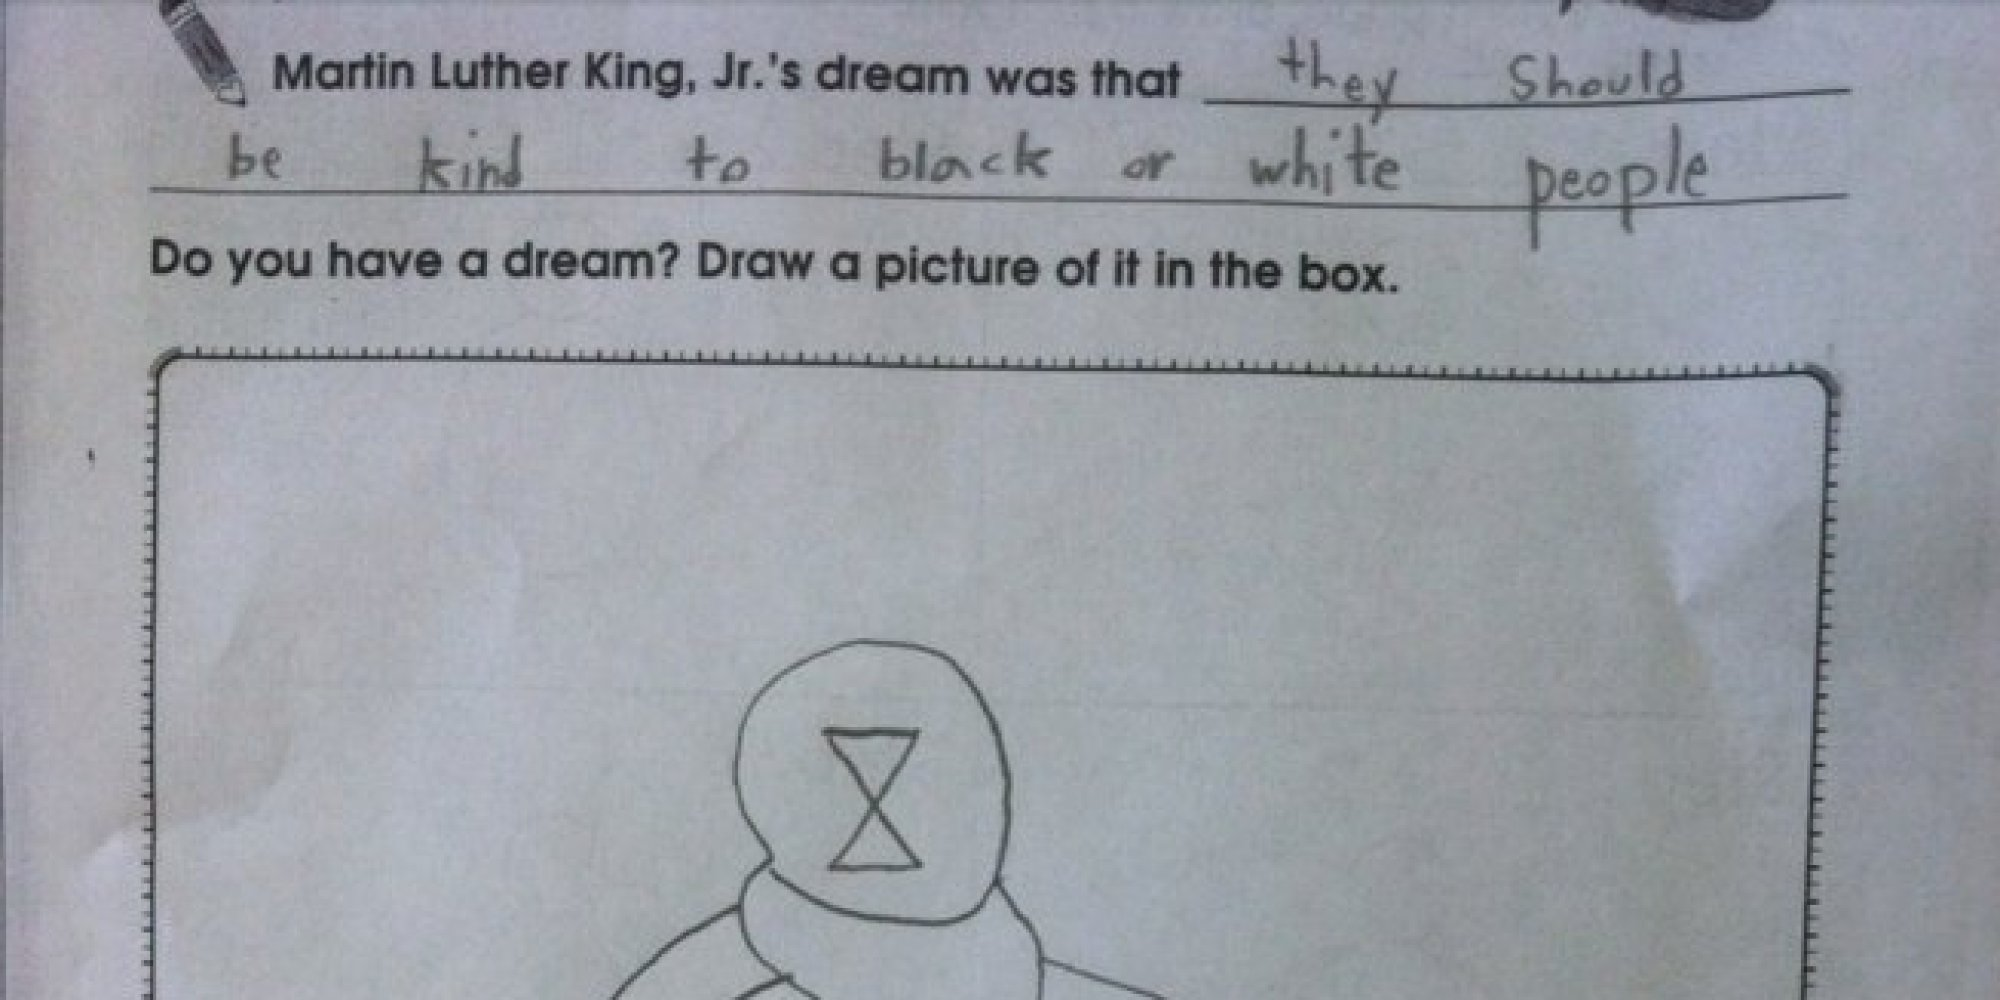 Child S Answer To Martin Luther King Dream School Worksheet Is Rather Unsettling